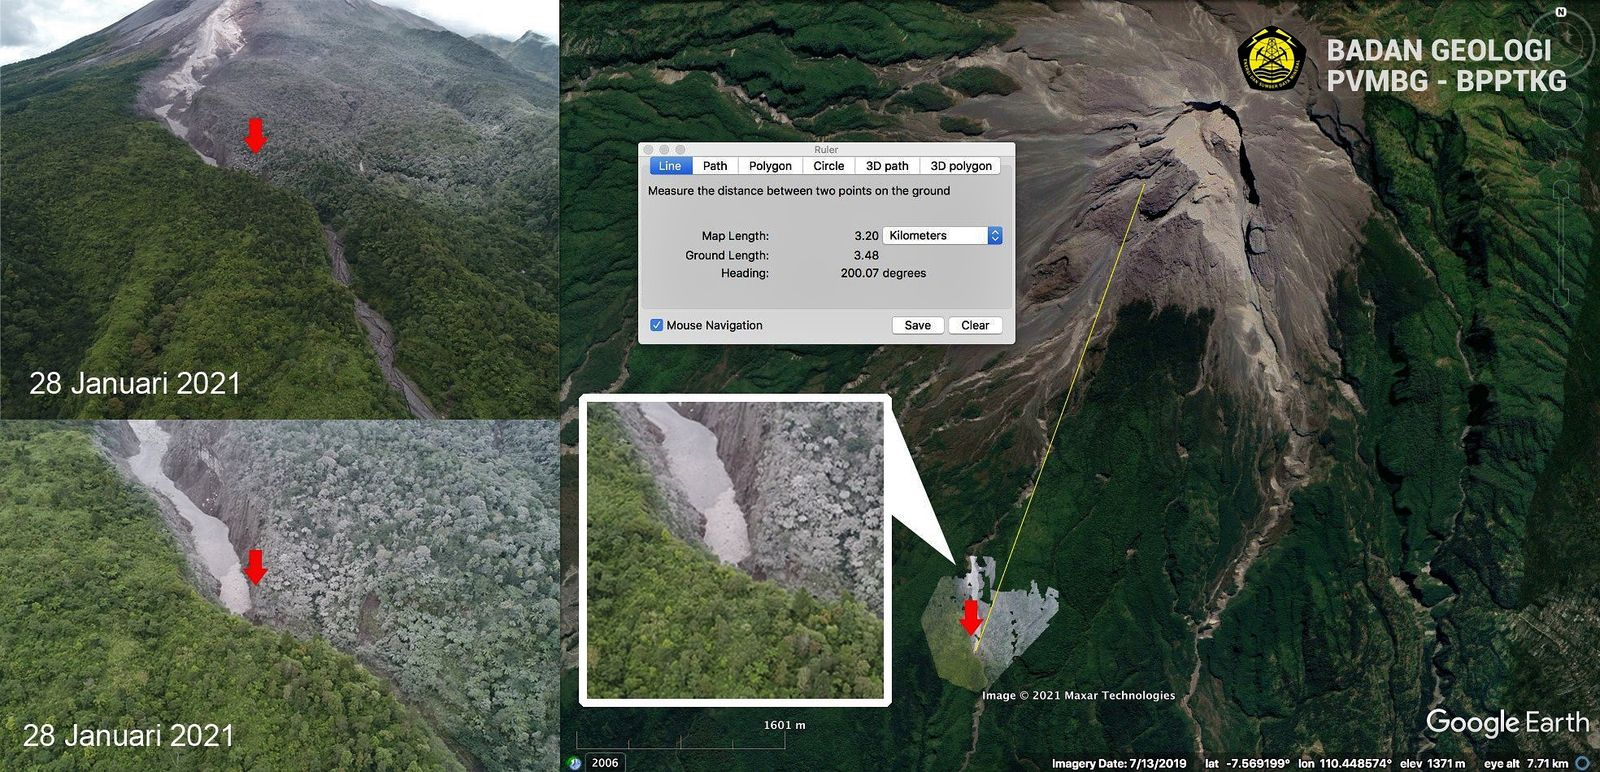 Merapi - control flight over the zone affected by pyroclastic flows, - Doc. BPPTKG 28.01.2021